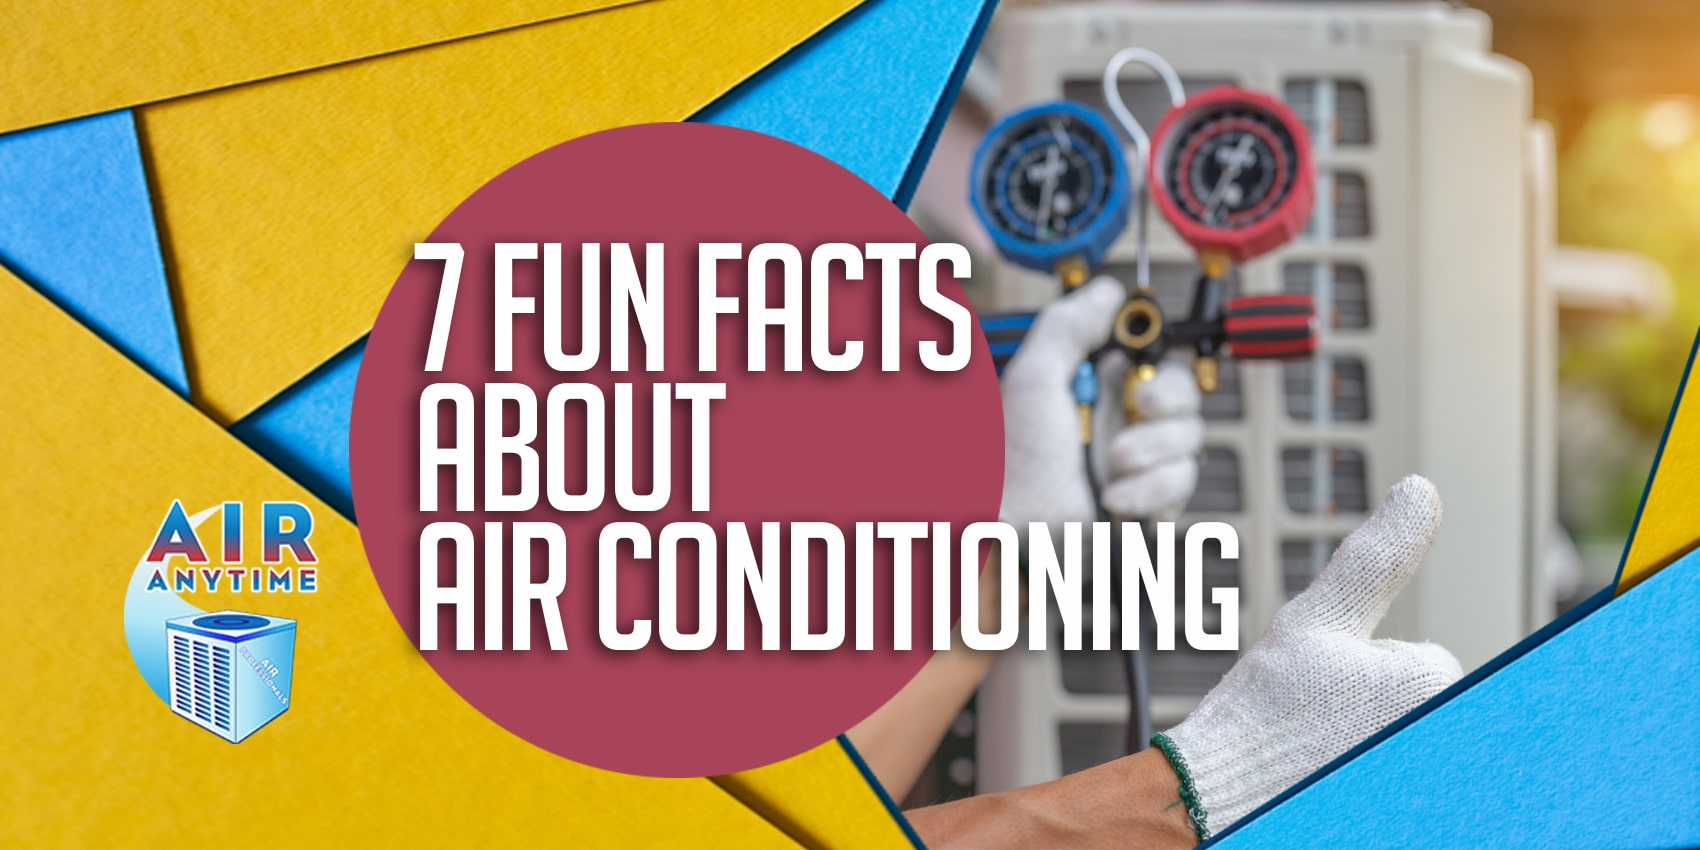 7 Fun Facts About Air Conditioning